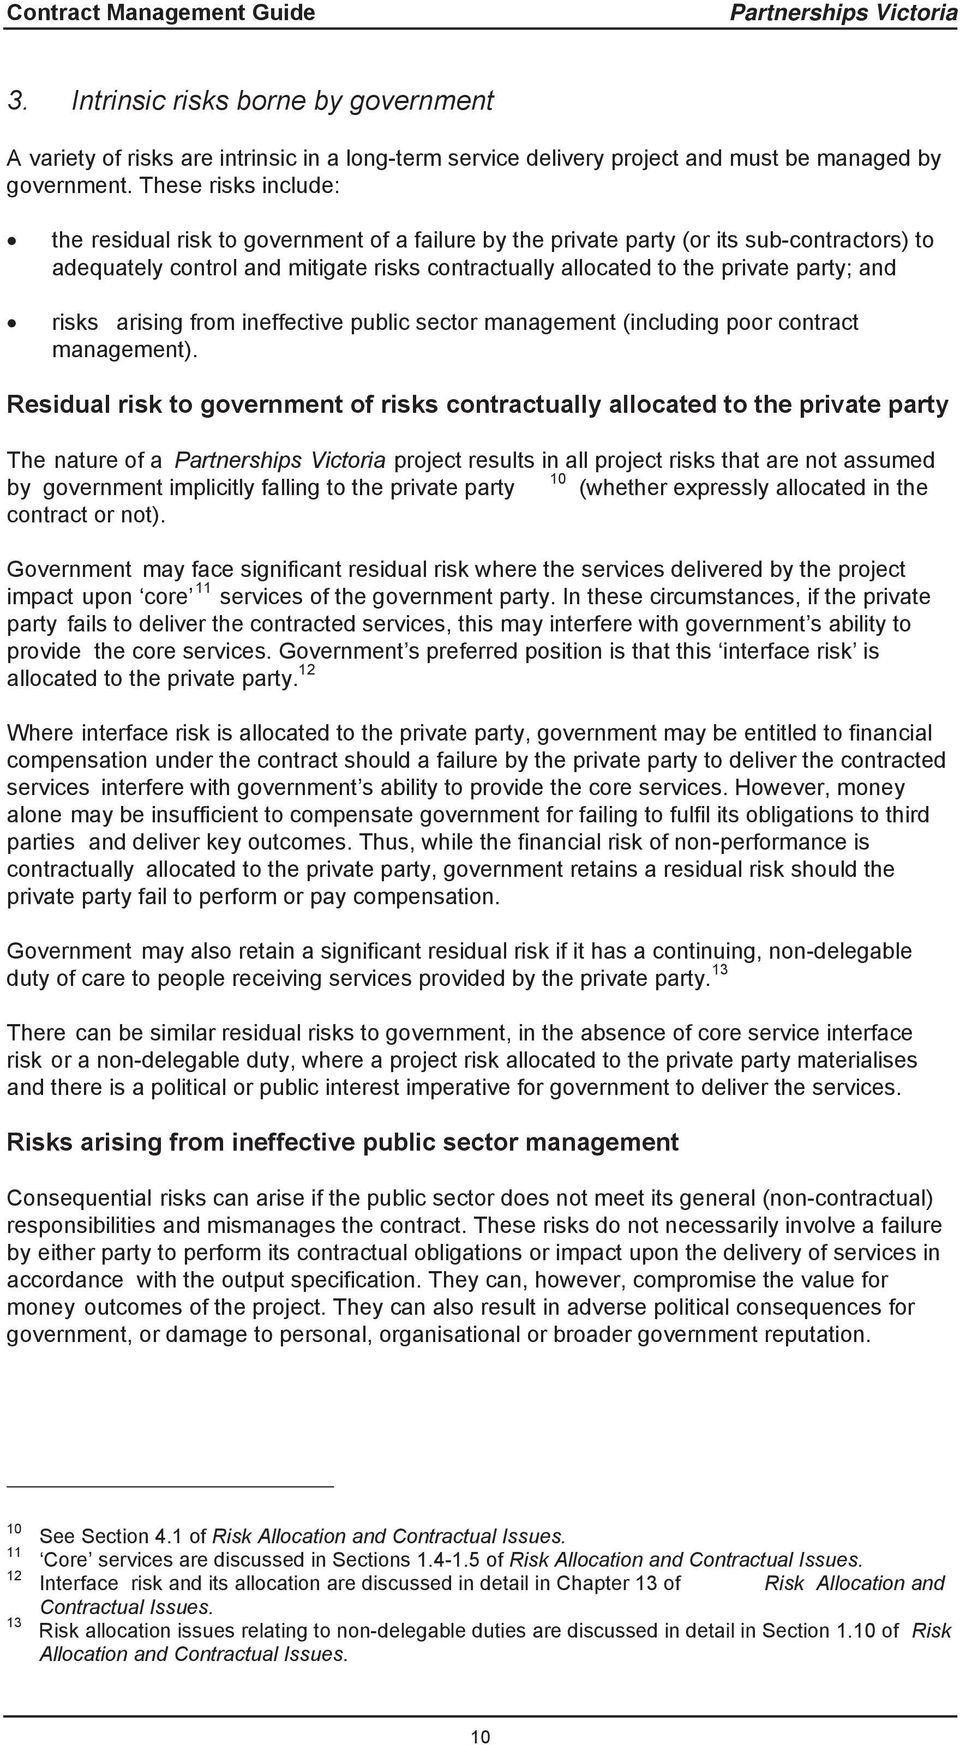 and risks arising from ineffective public sector management (including poor contract management).